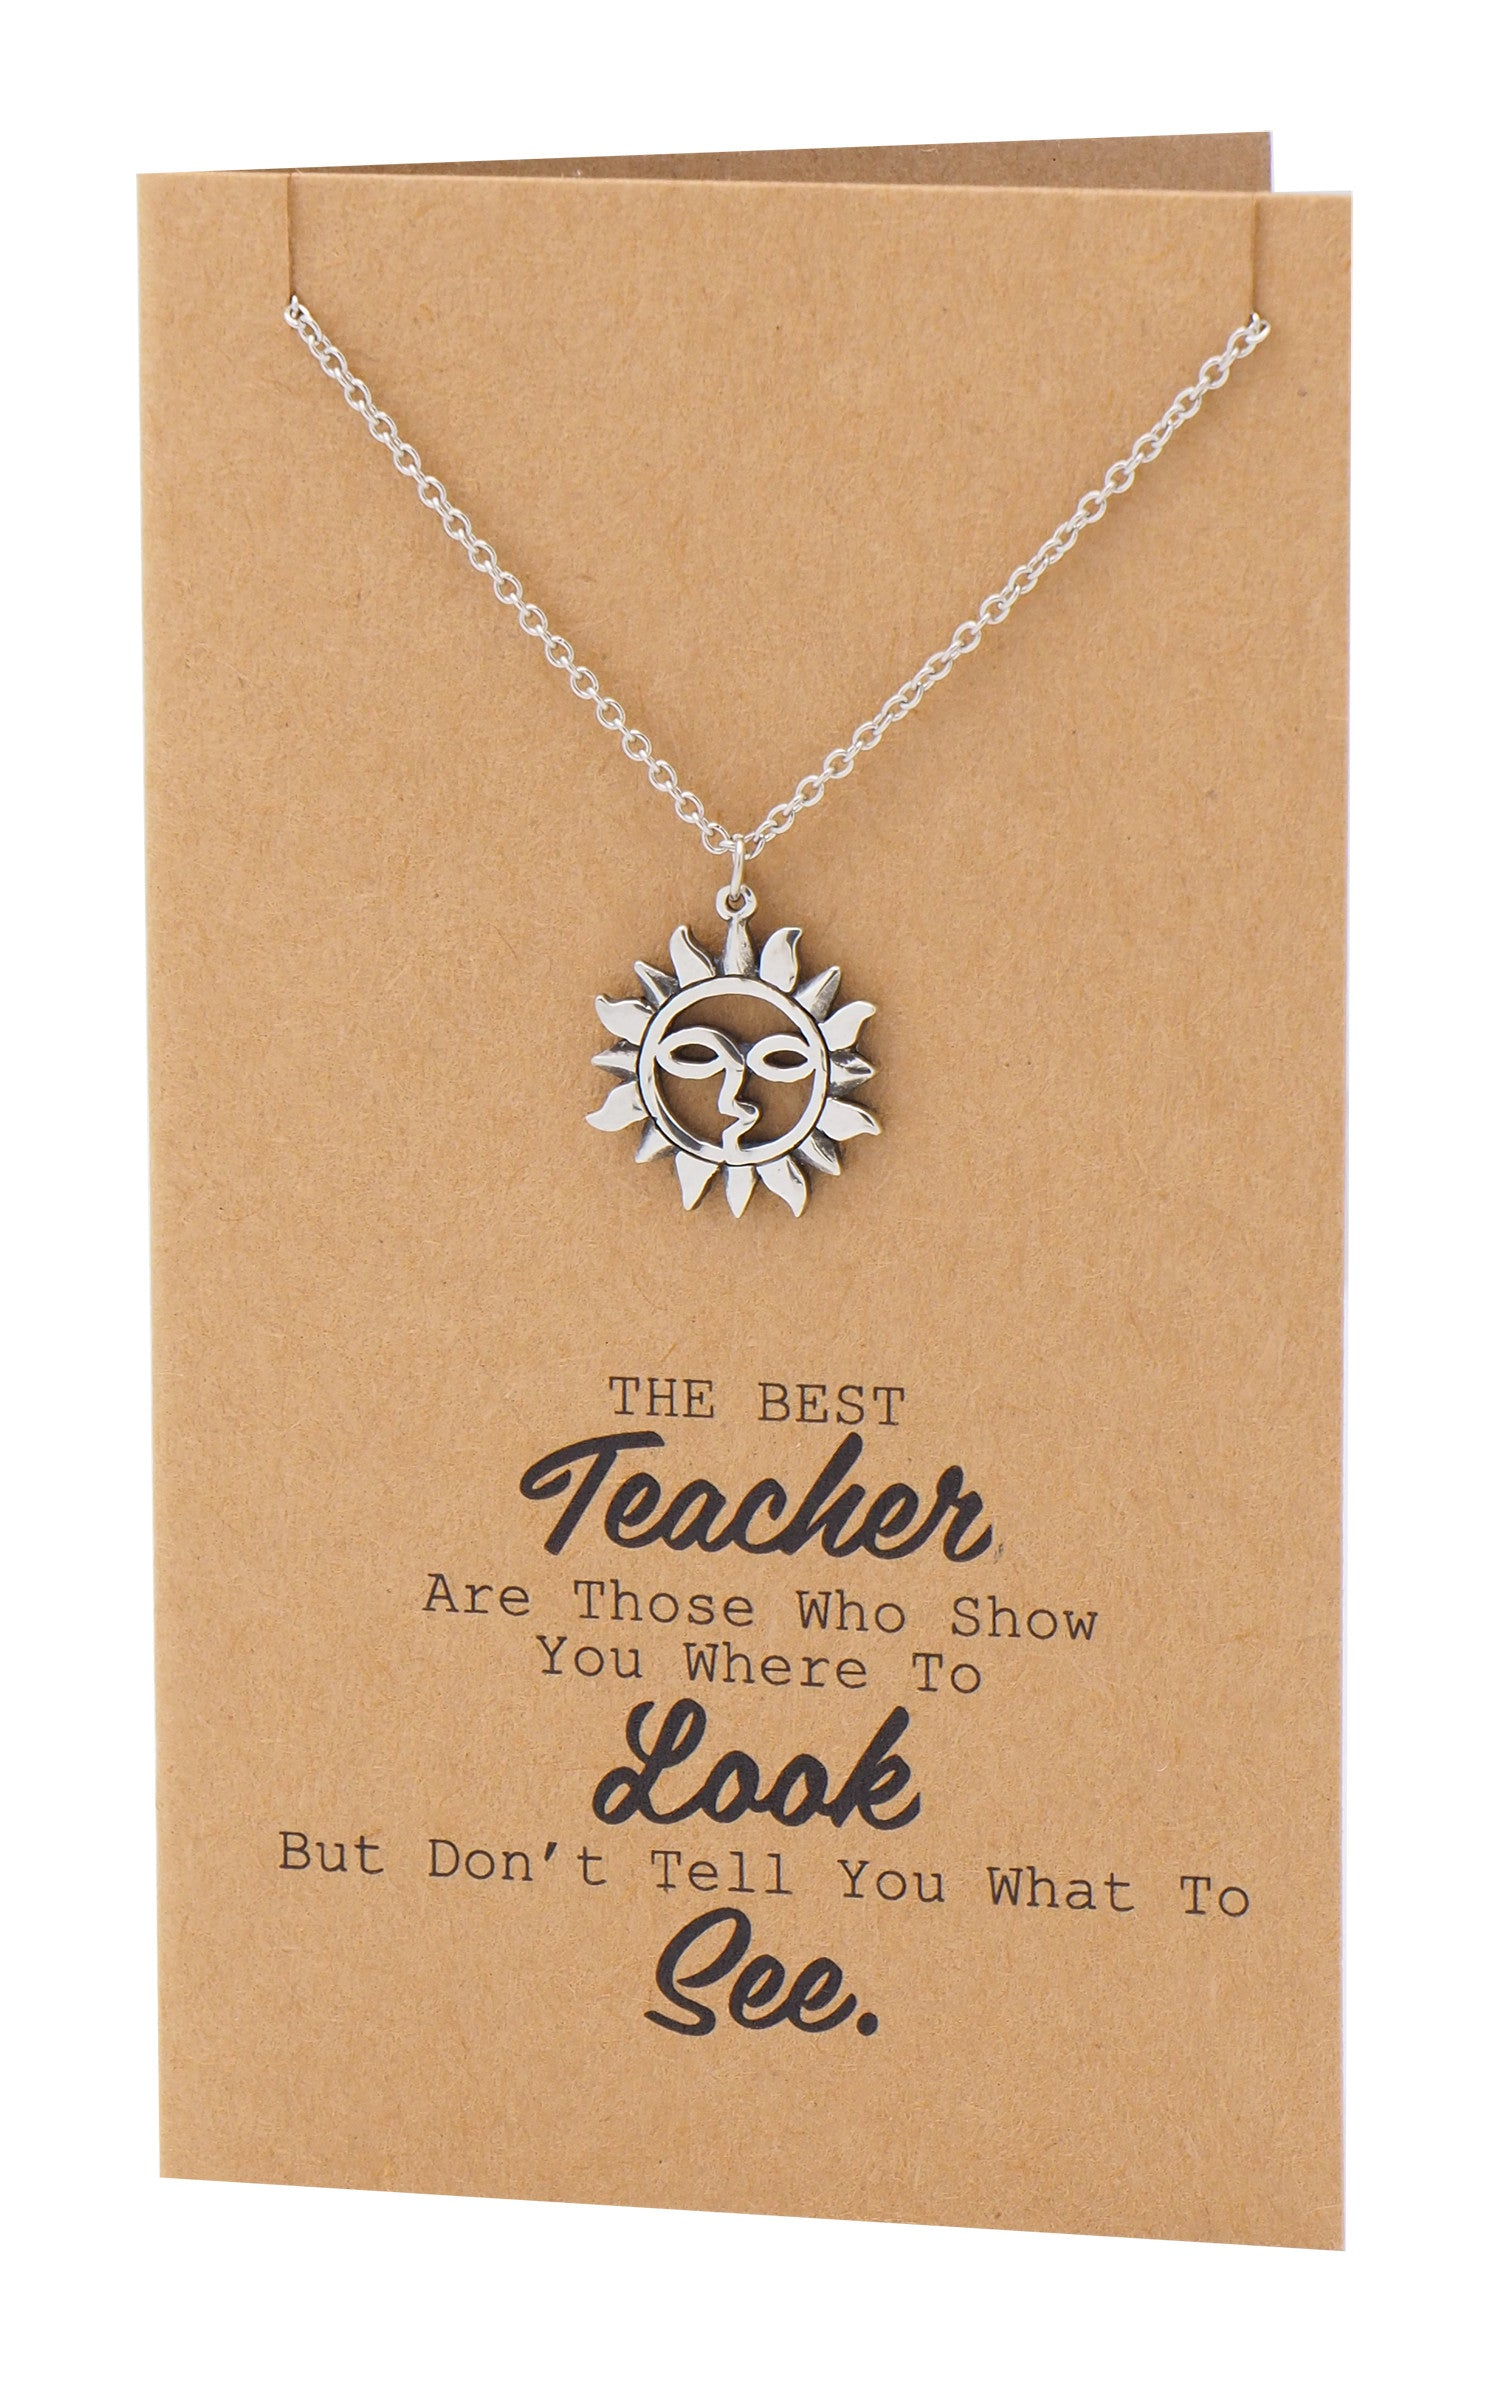 brandi teacher quotes gifts sun necklace and thank you